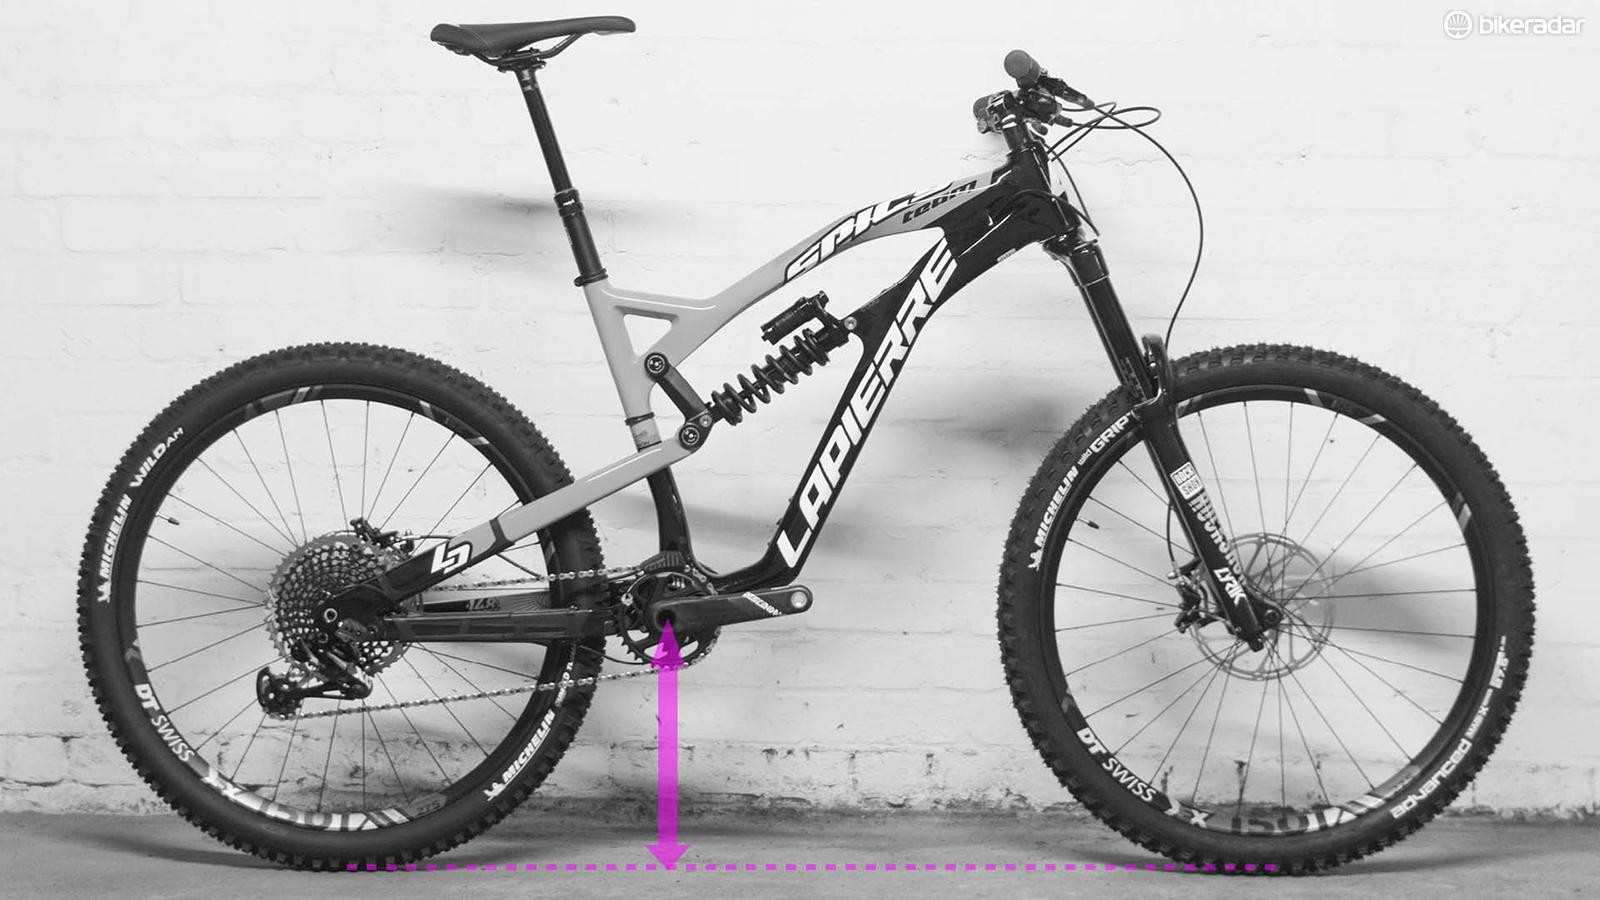 Bottom-bracket height from the ground determines the centre of gravity height of the rider, which affects front-rear stability, as well as cornering agility